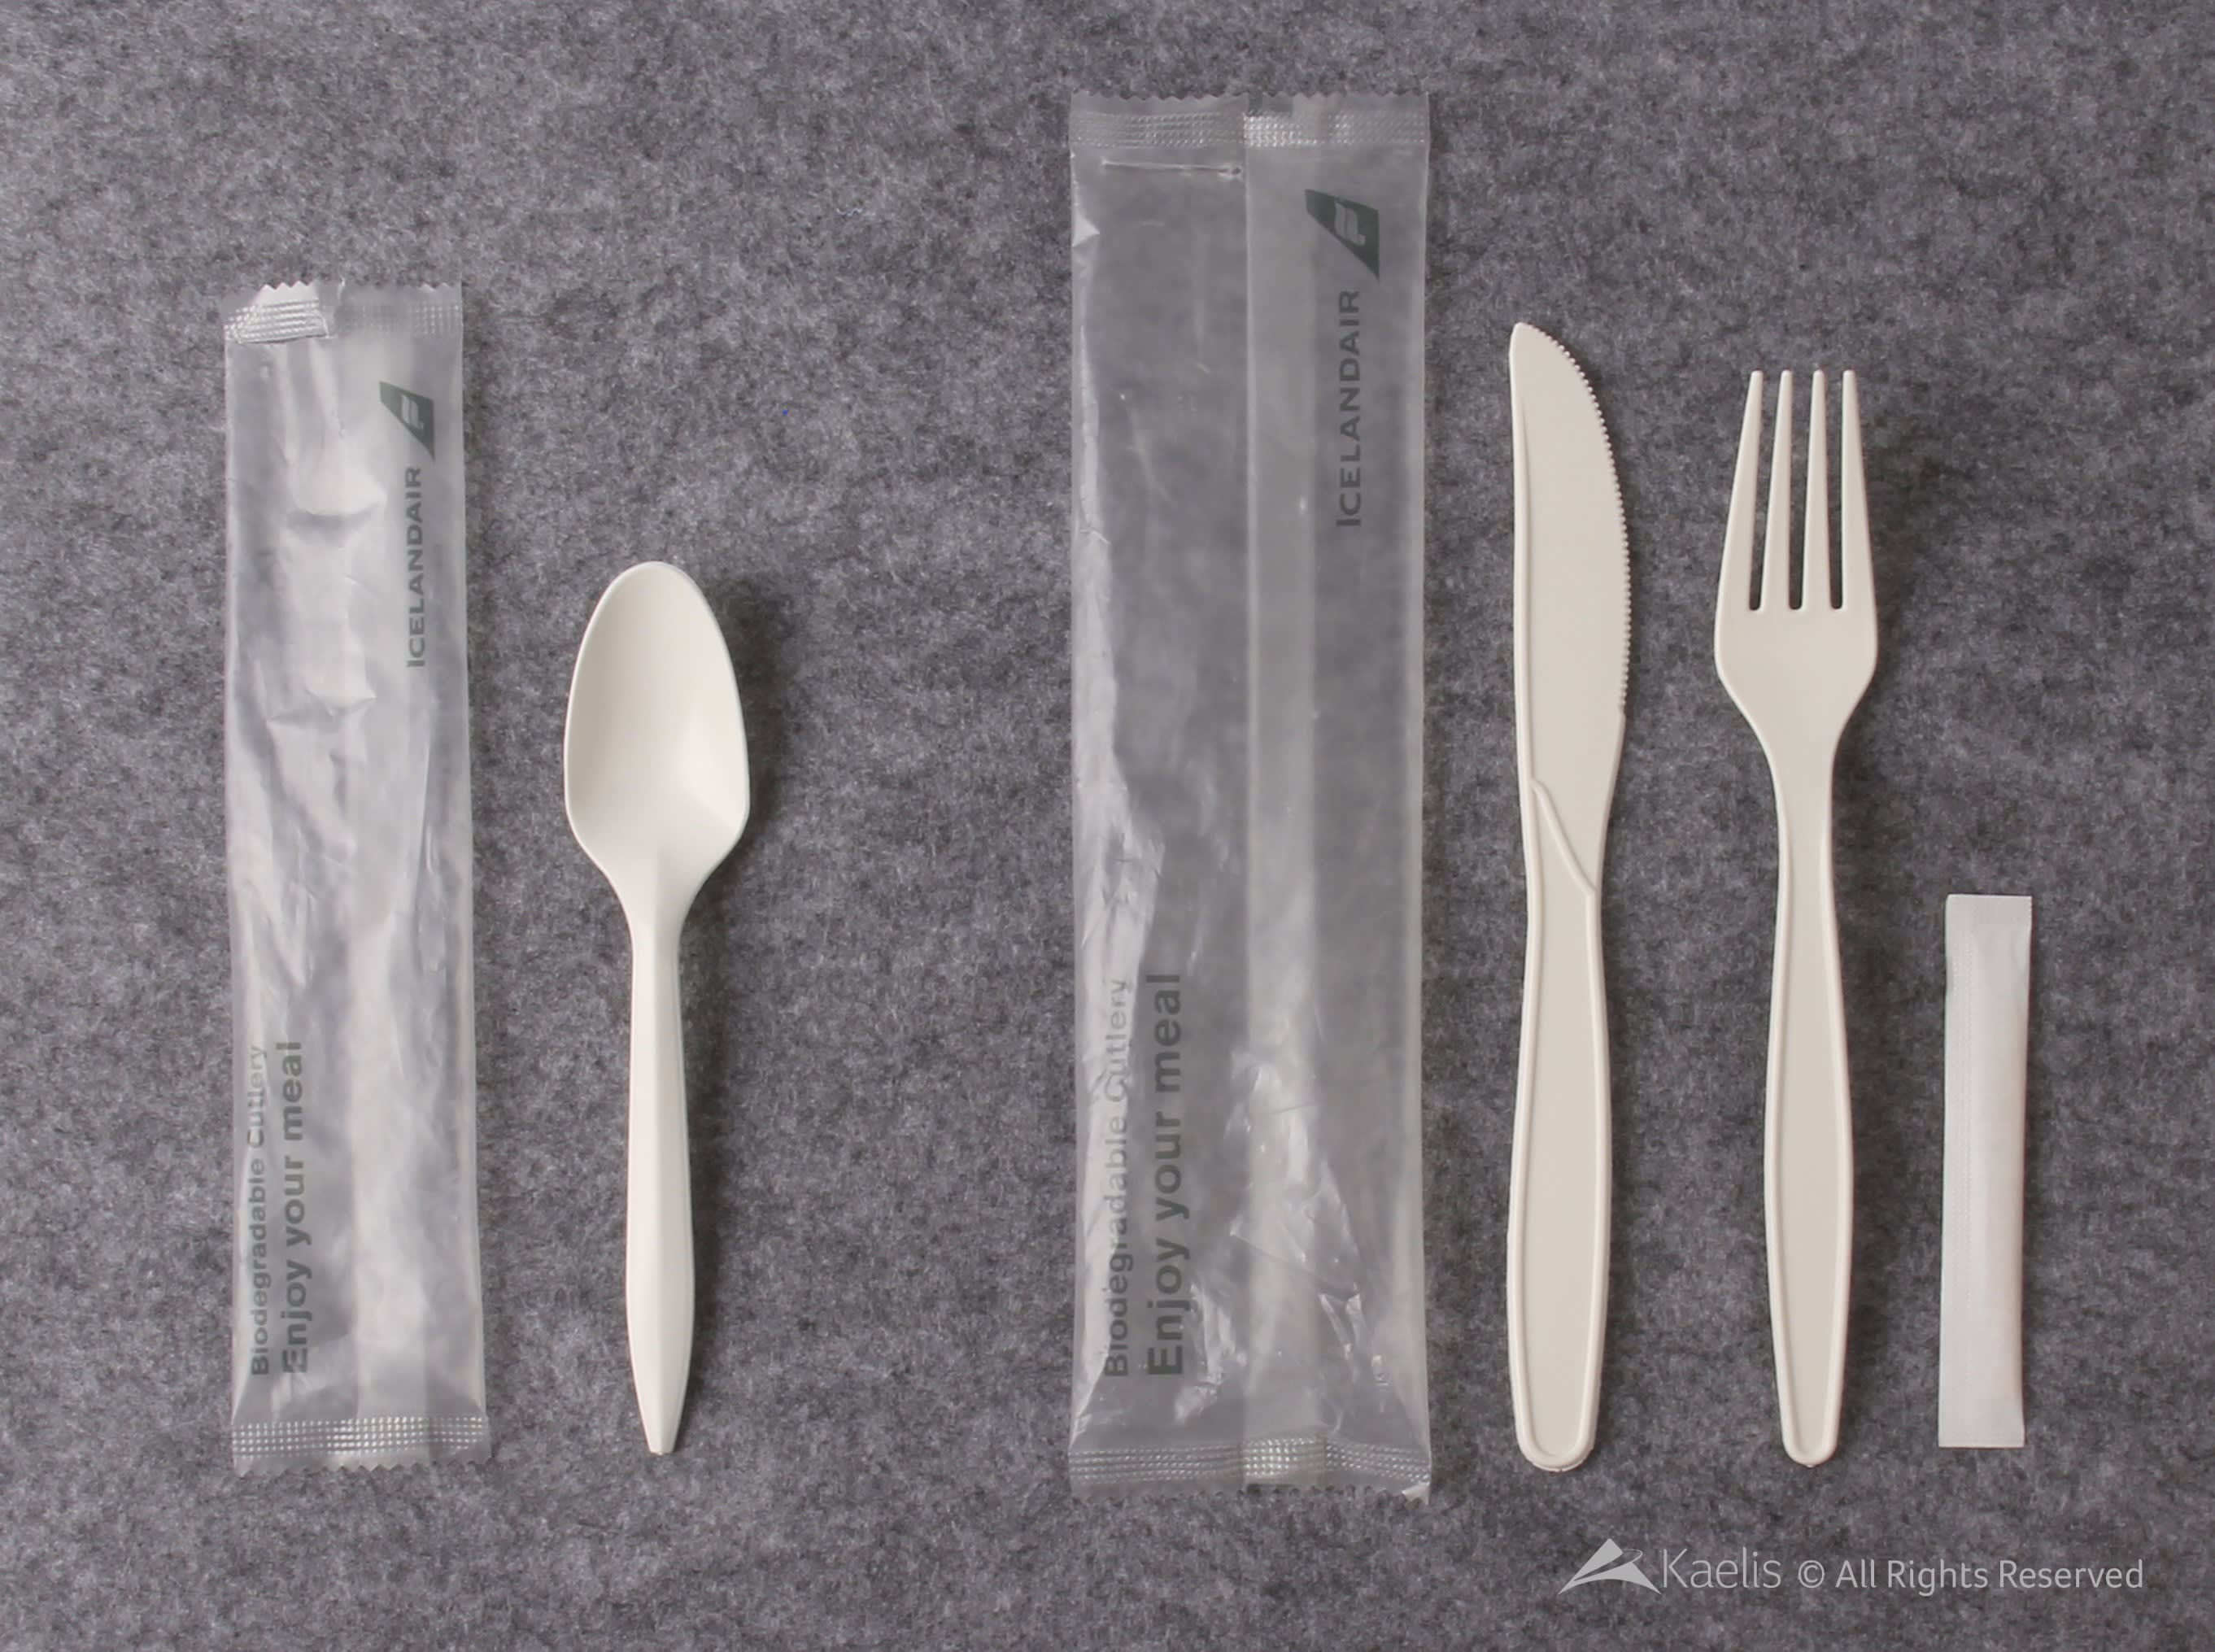 Icelandair onboard biodegradable cutlery - a spoon, fork, knife and toothpick - pictured against a grey background